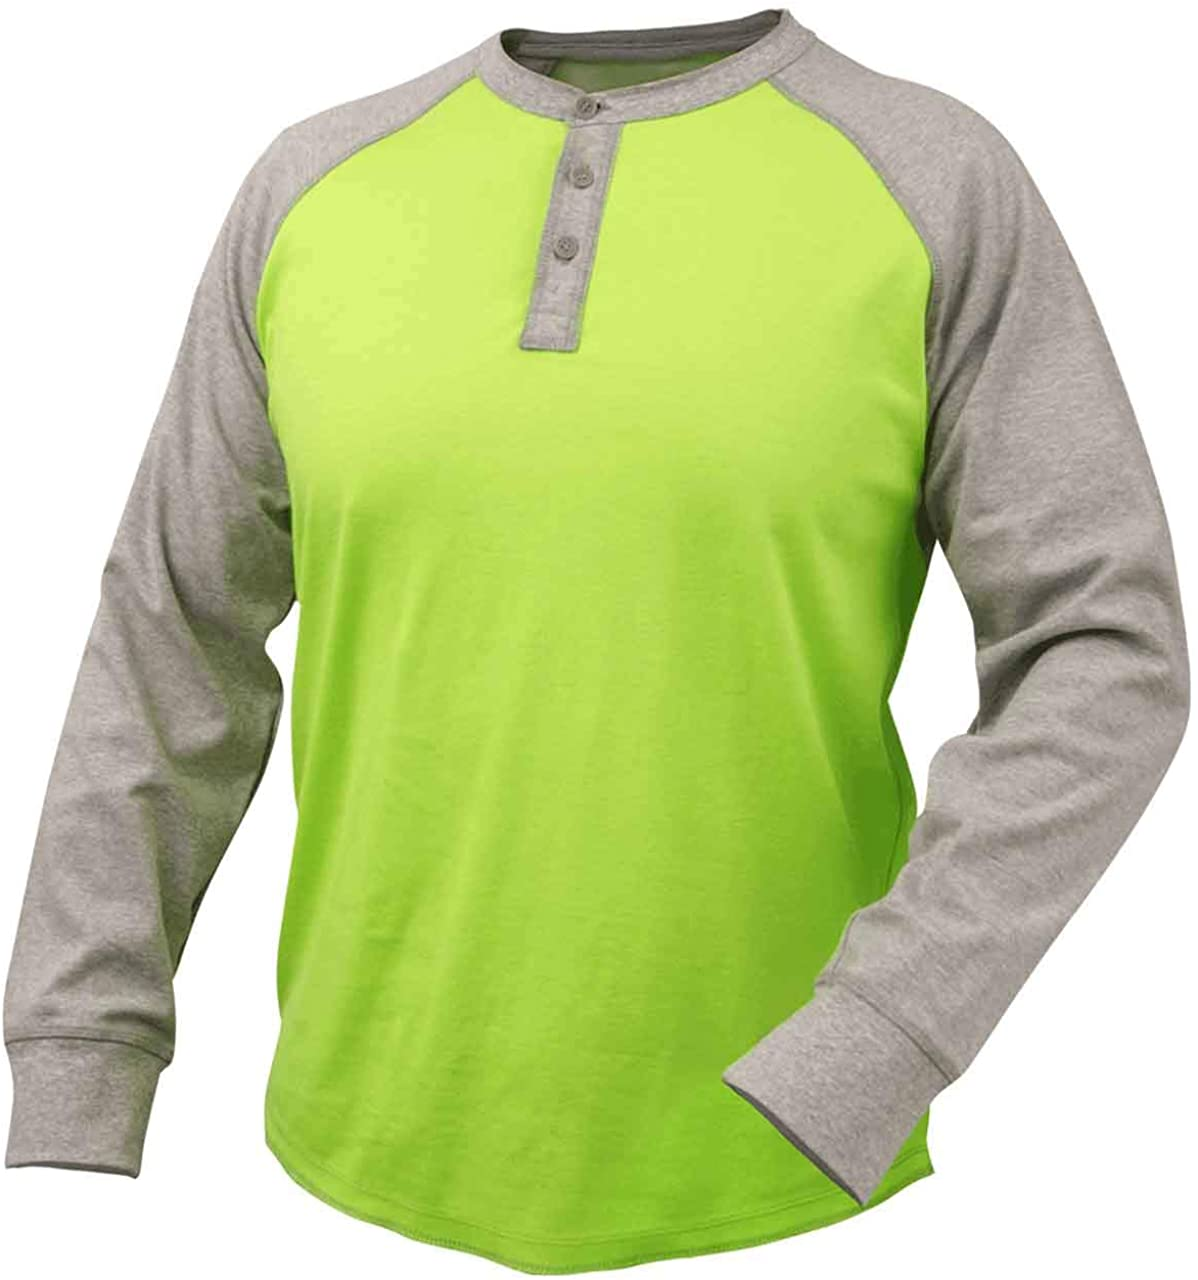 Black Stallion TF2520 Flame-Resistant Cotton Jersey Henley Long Sleeve T-Shirt, Gray/Lime, Large